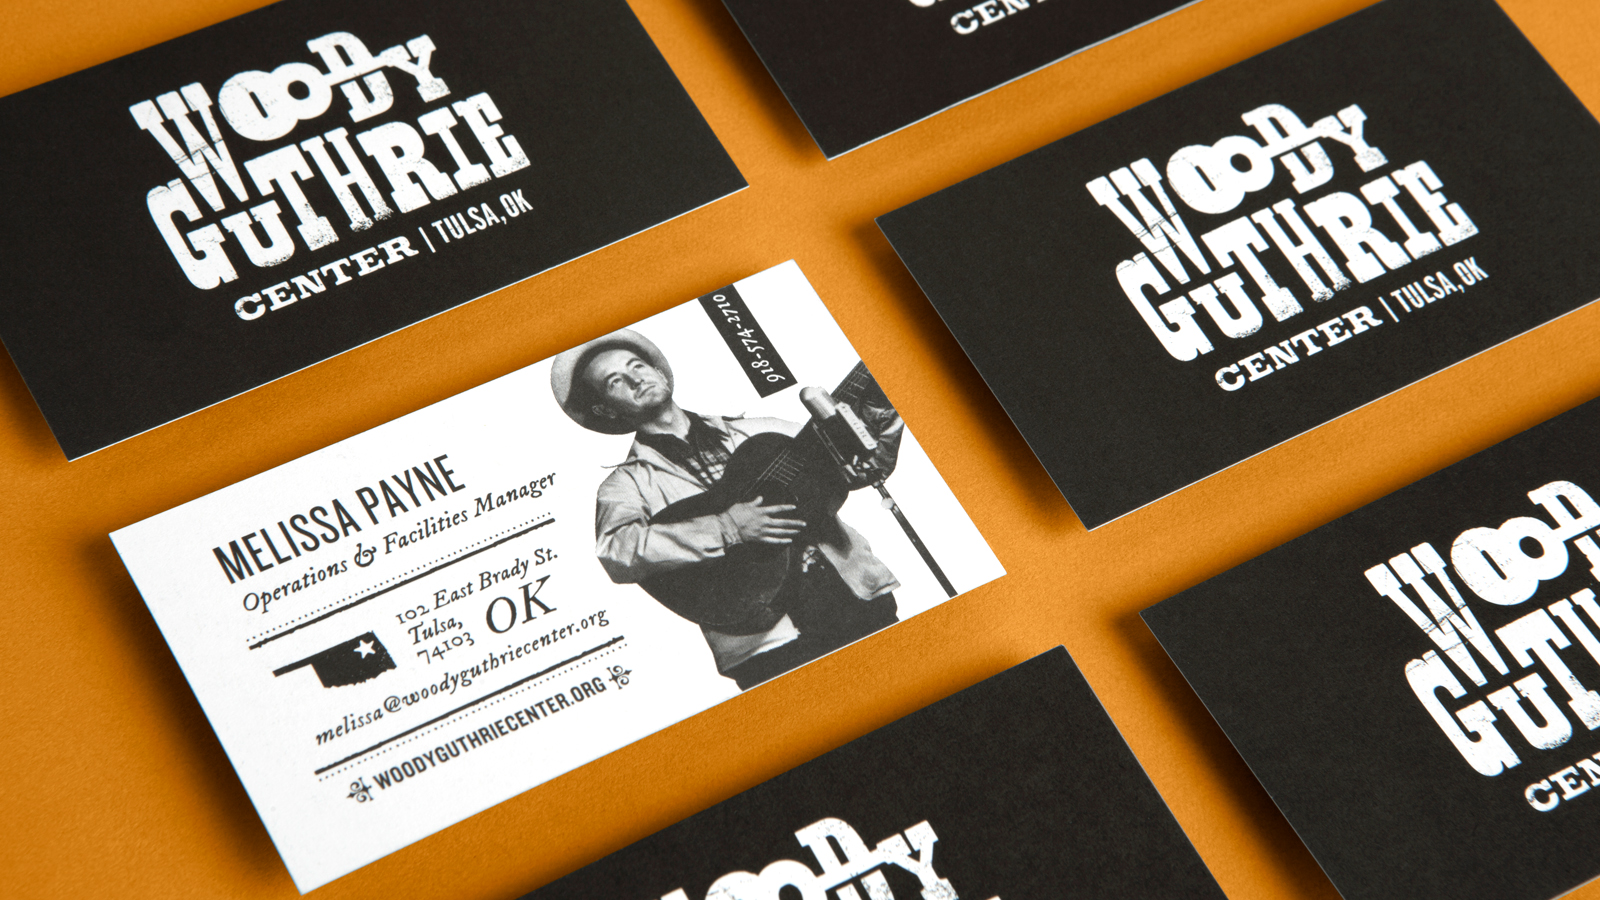 Woody Guthrie Center – Identity & Website by TOKY